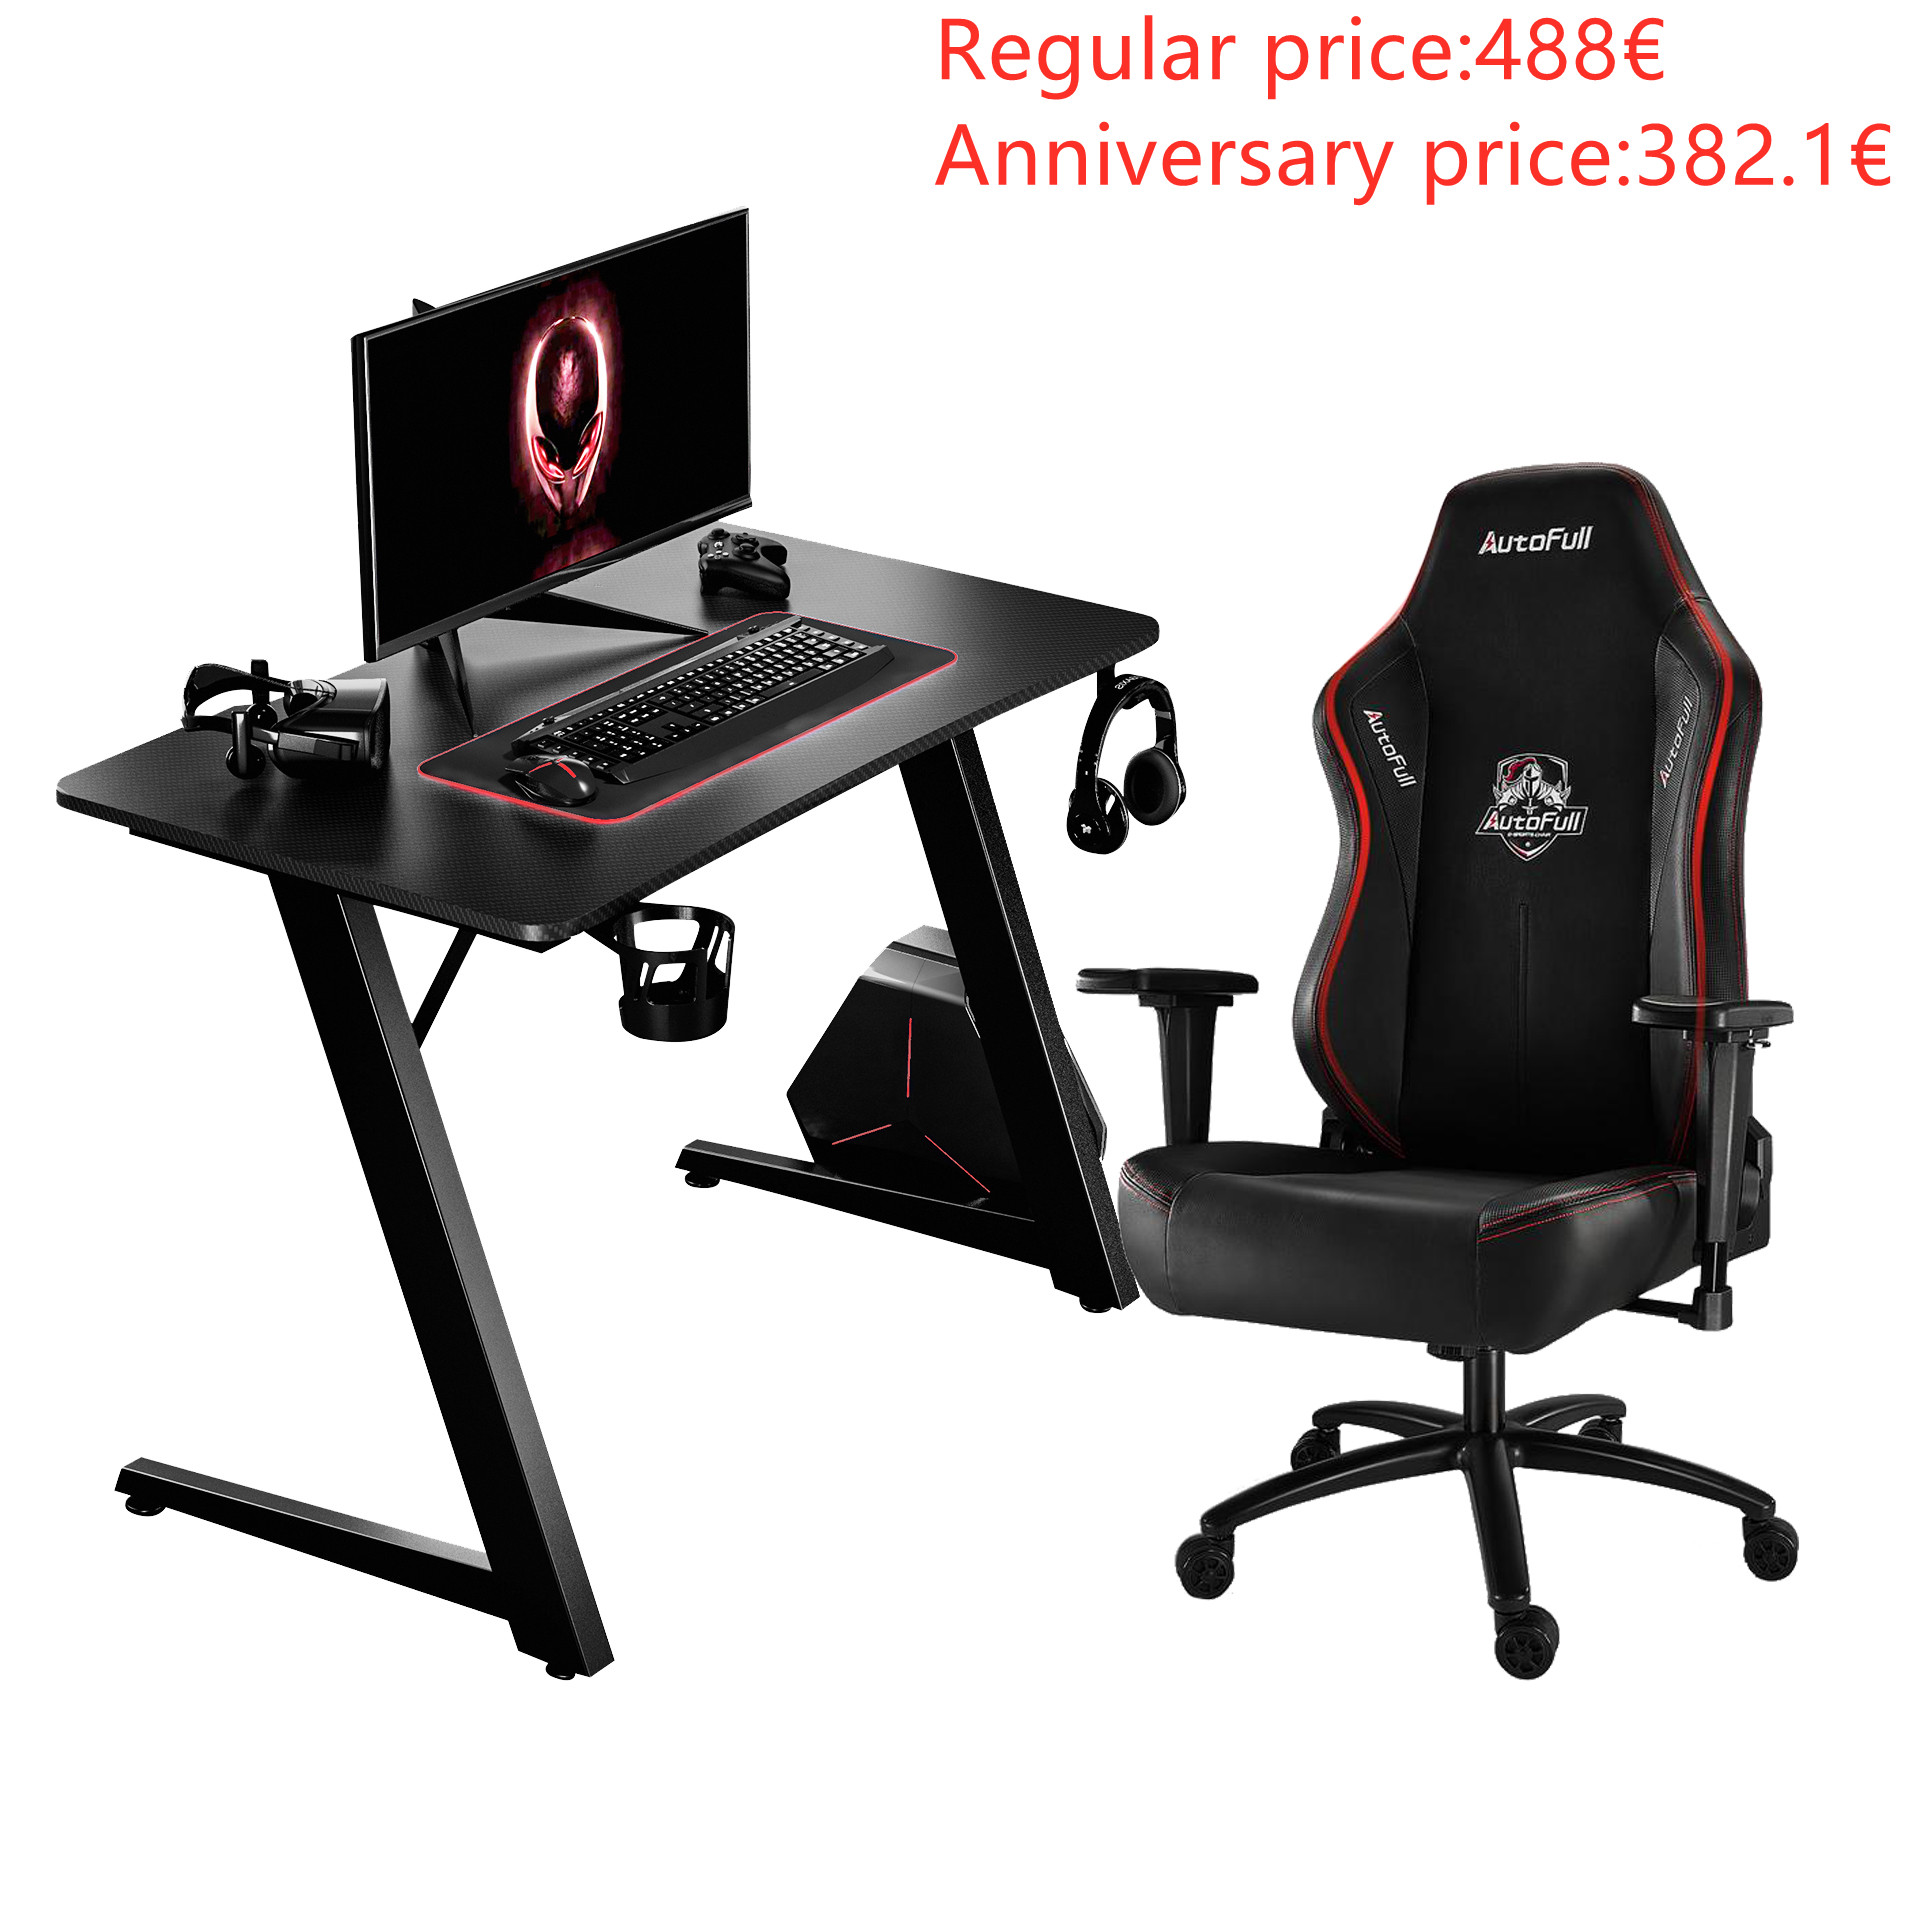 Autofull AF068DPU+AFDJZ004BL Gaming Chair and Desk Combo